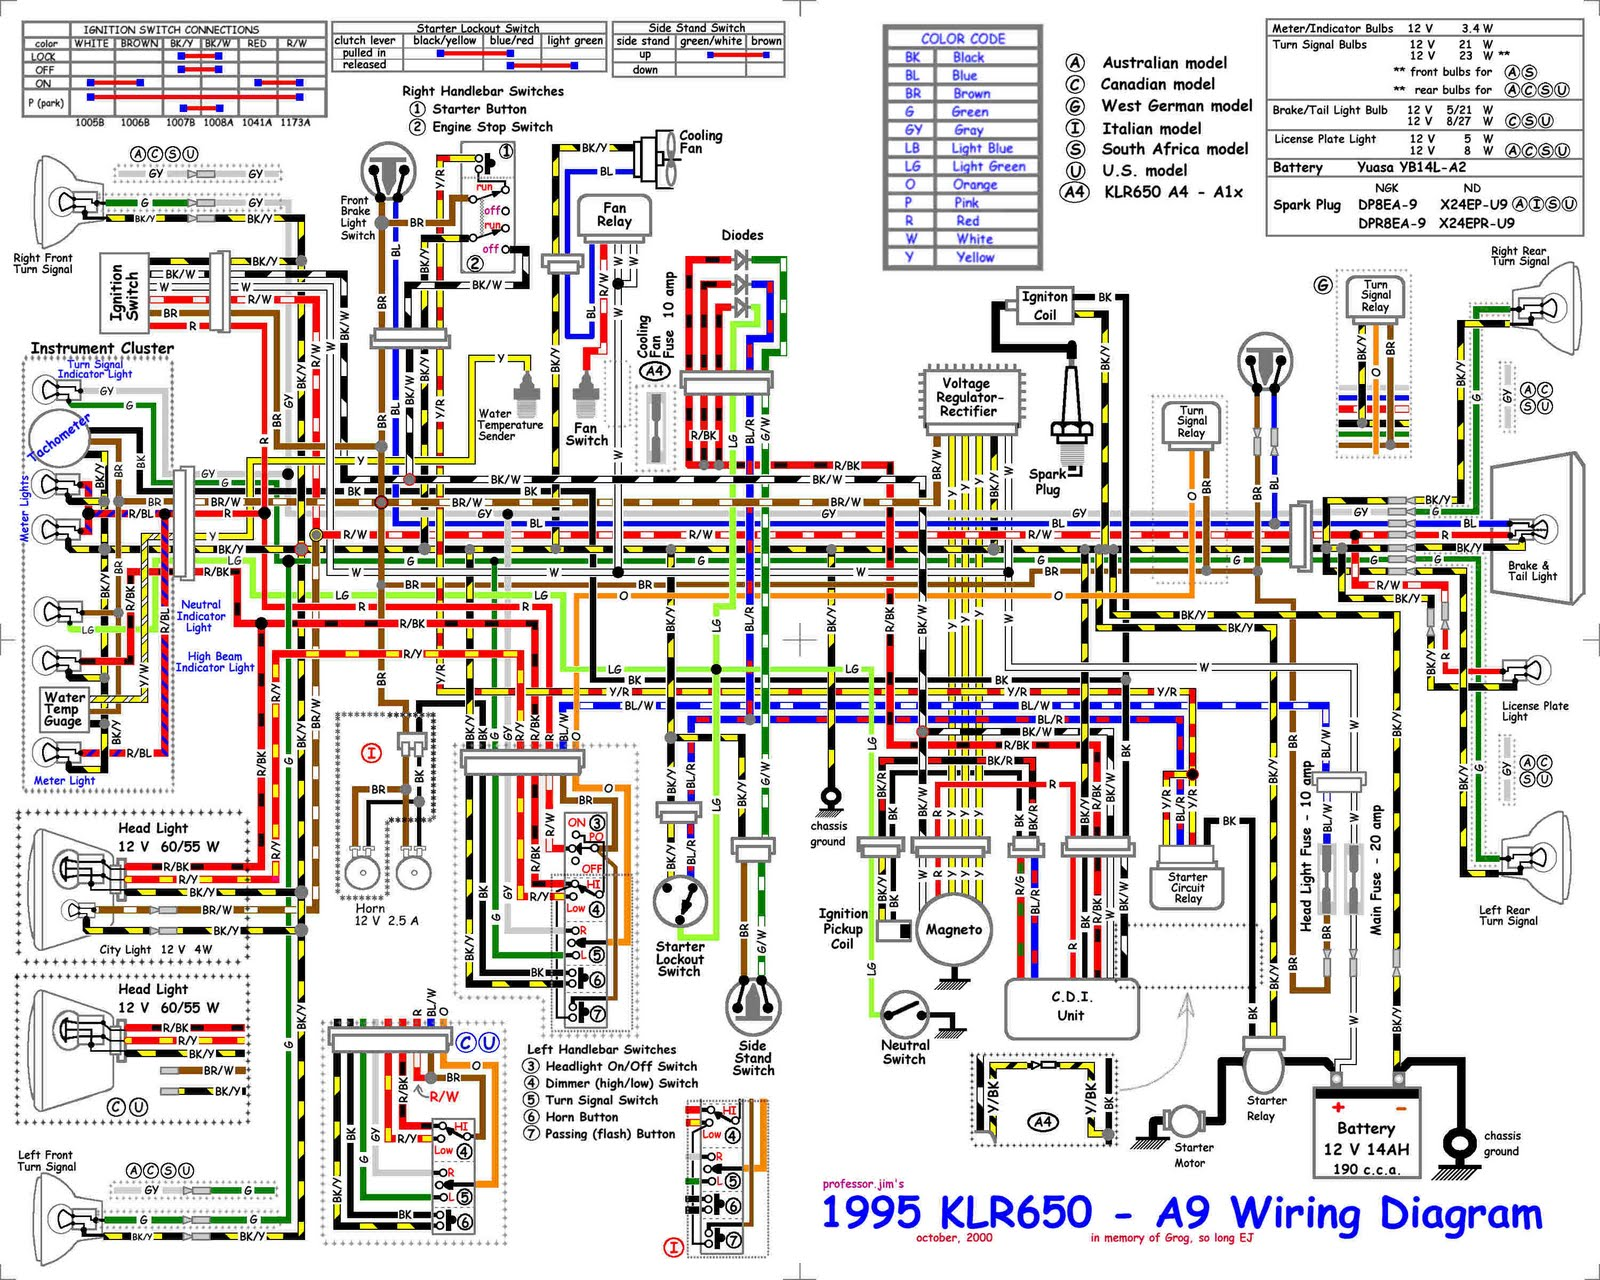 1974 monte carlo wiring diagram free auto wiring diagram 1974 chevrolet monte carlo wiring diagram wiring diagram 2001 chevy monte carlo at virtualis.co